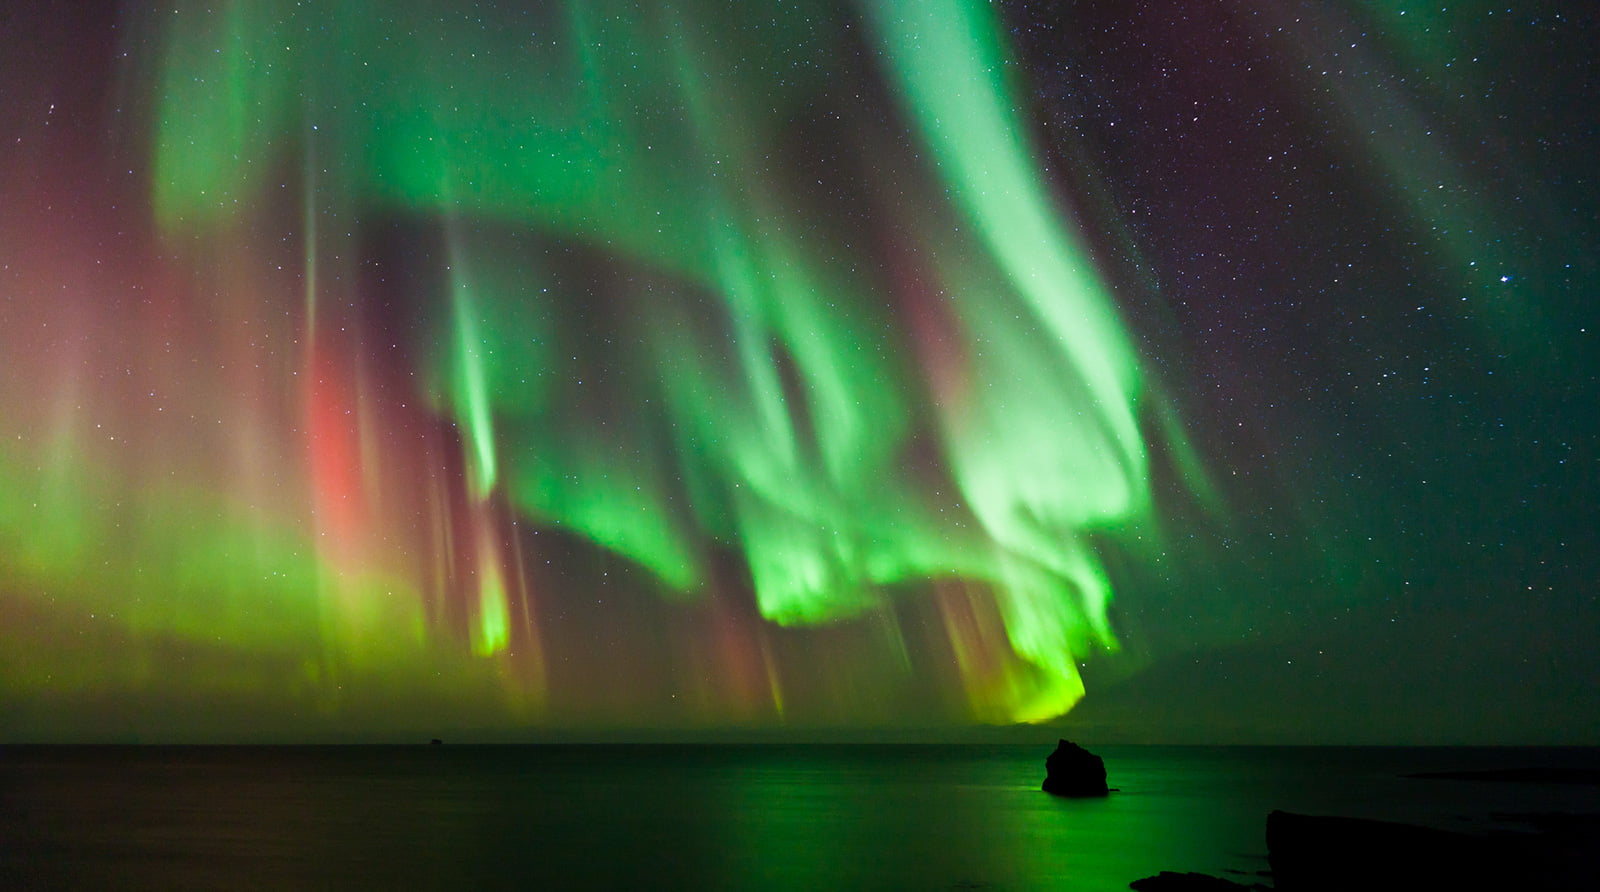 An intense northern lights display in Northern Norway